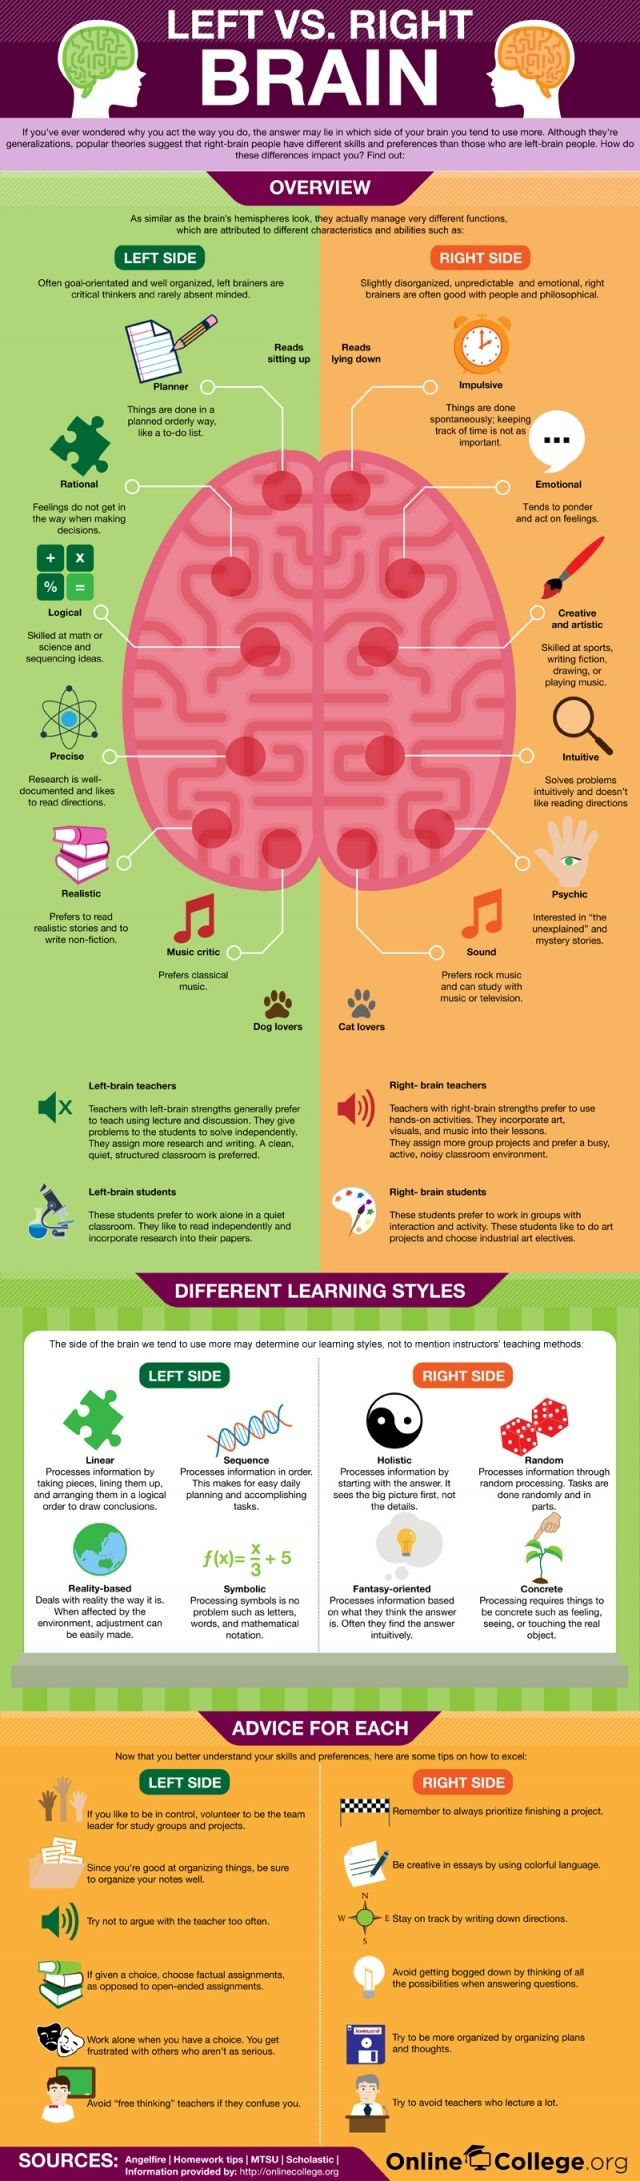 Are You a Left Brain or Right Brain Personality [Infographic] - BestInfographics.co